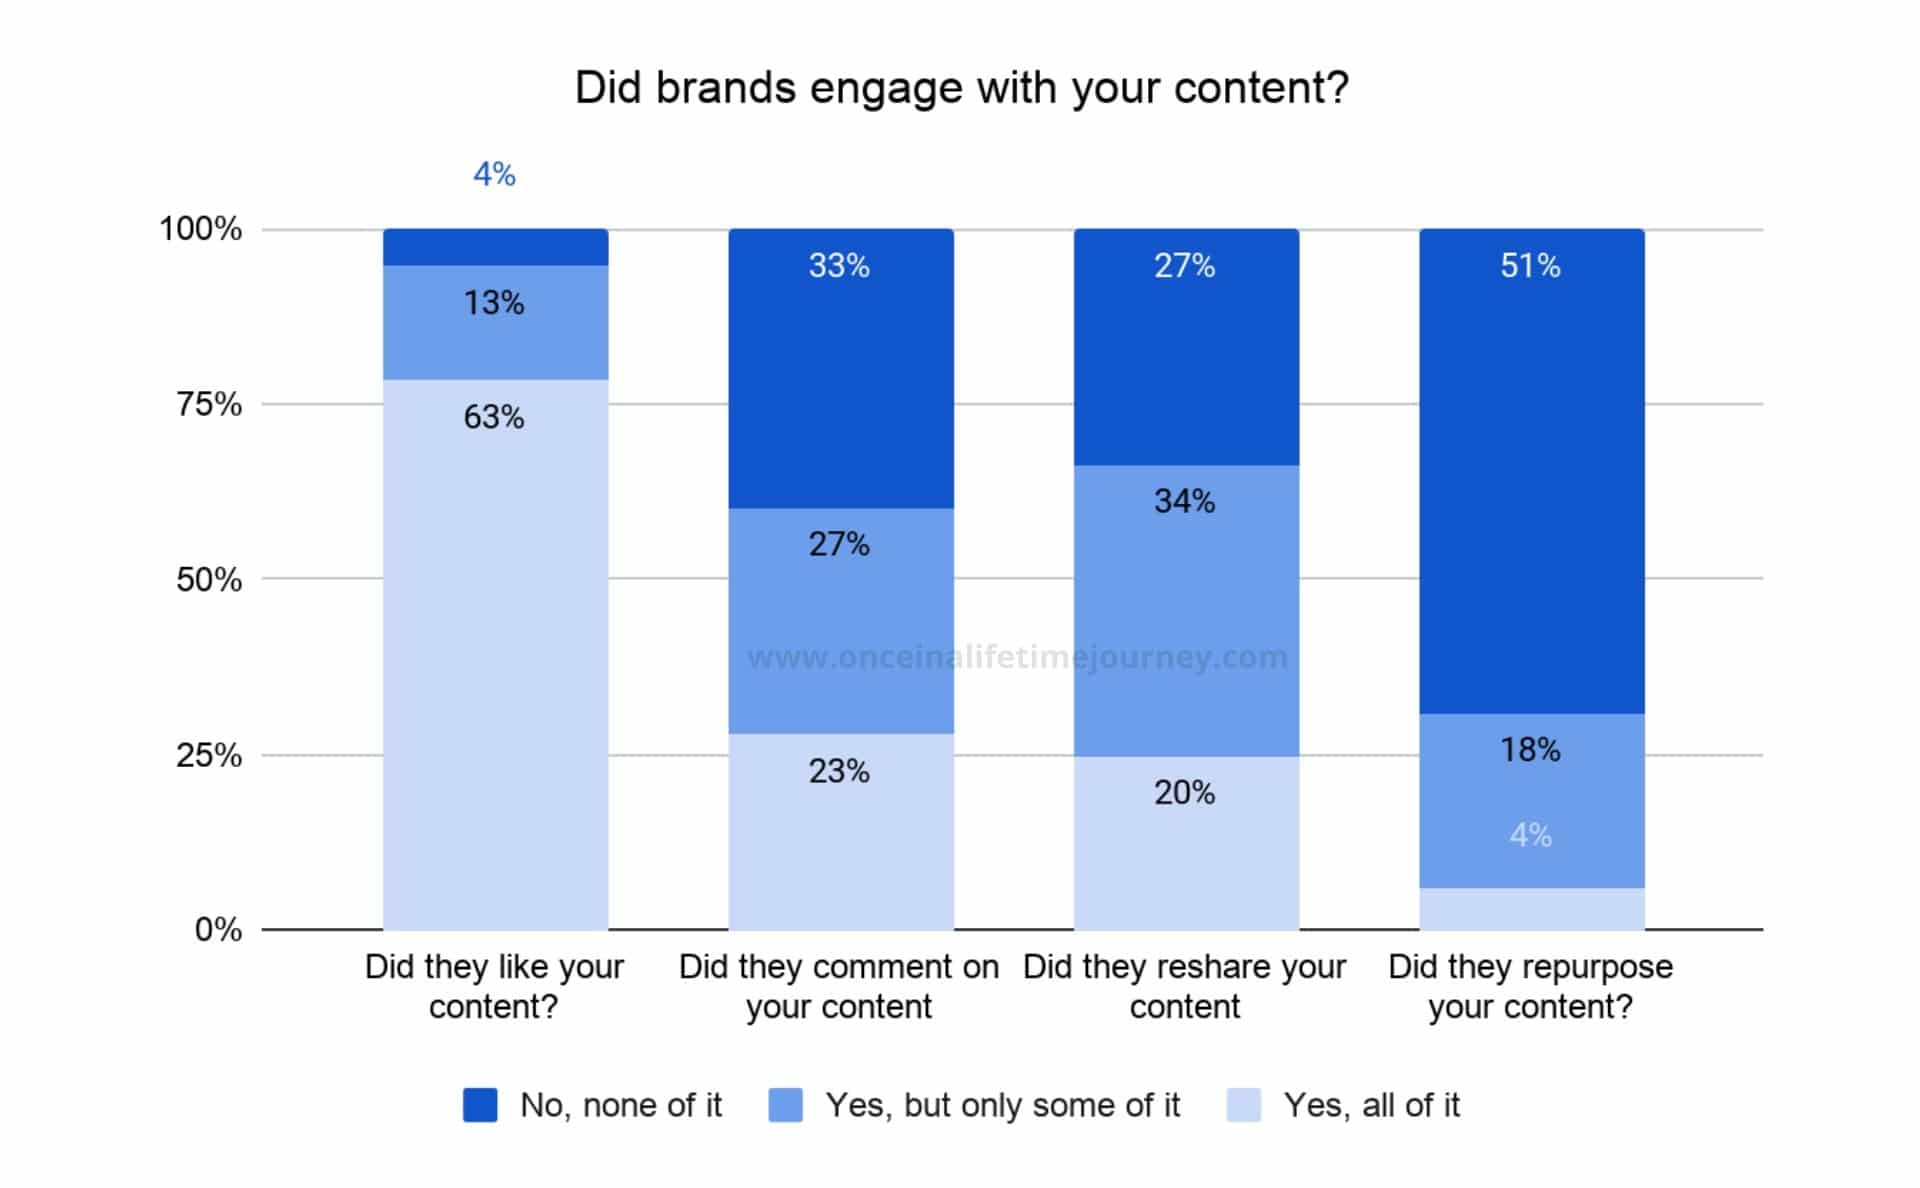 Brand engagement with content